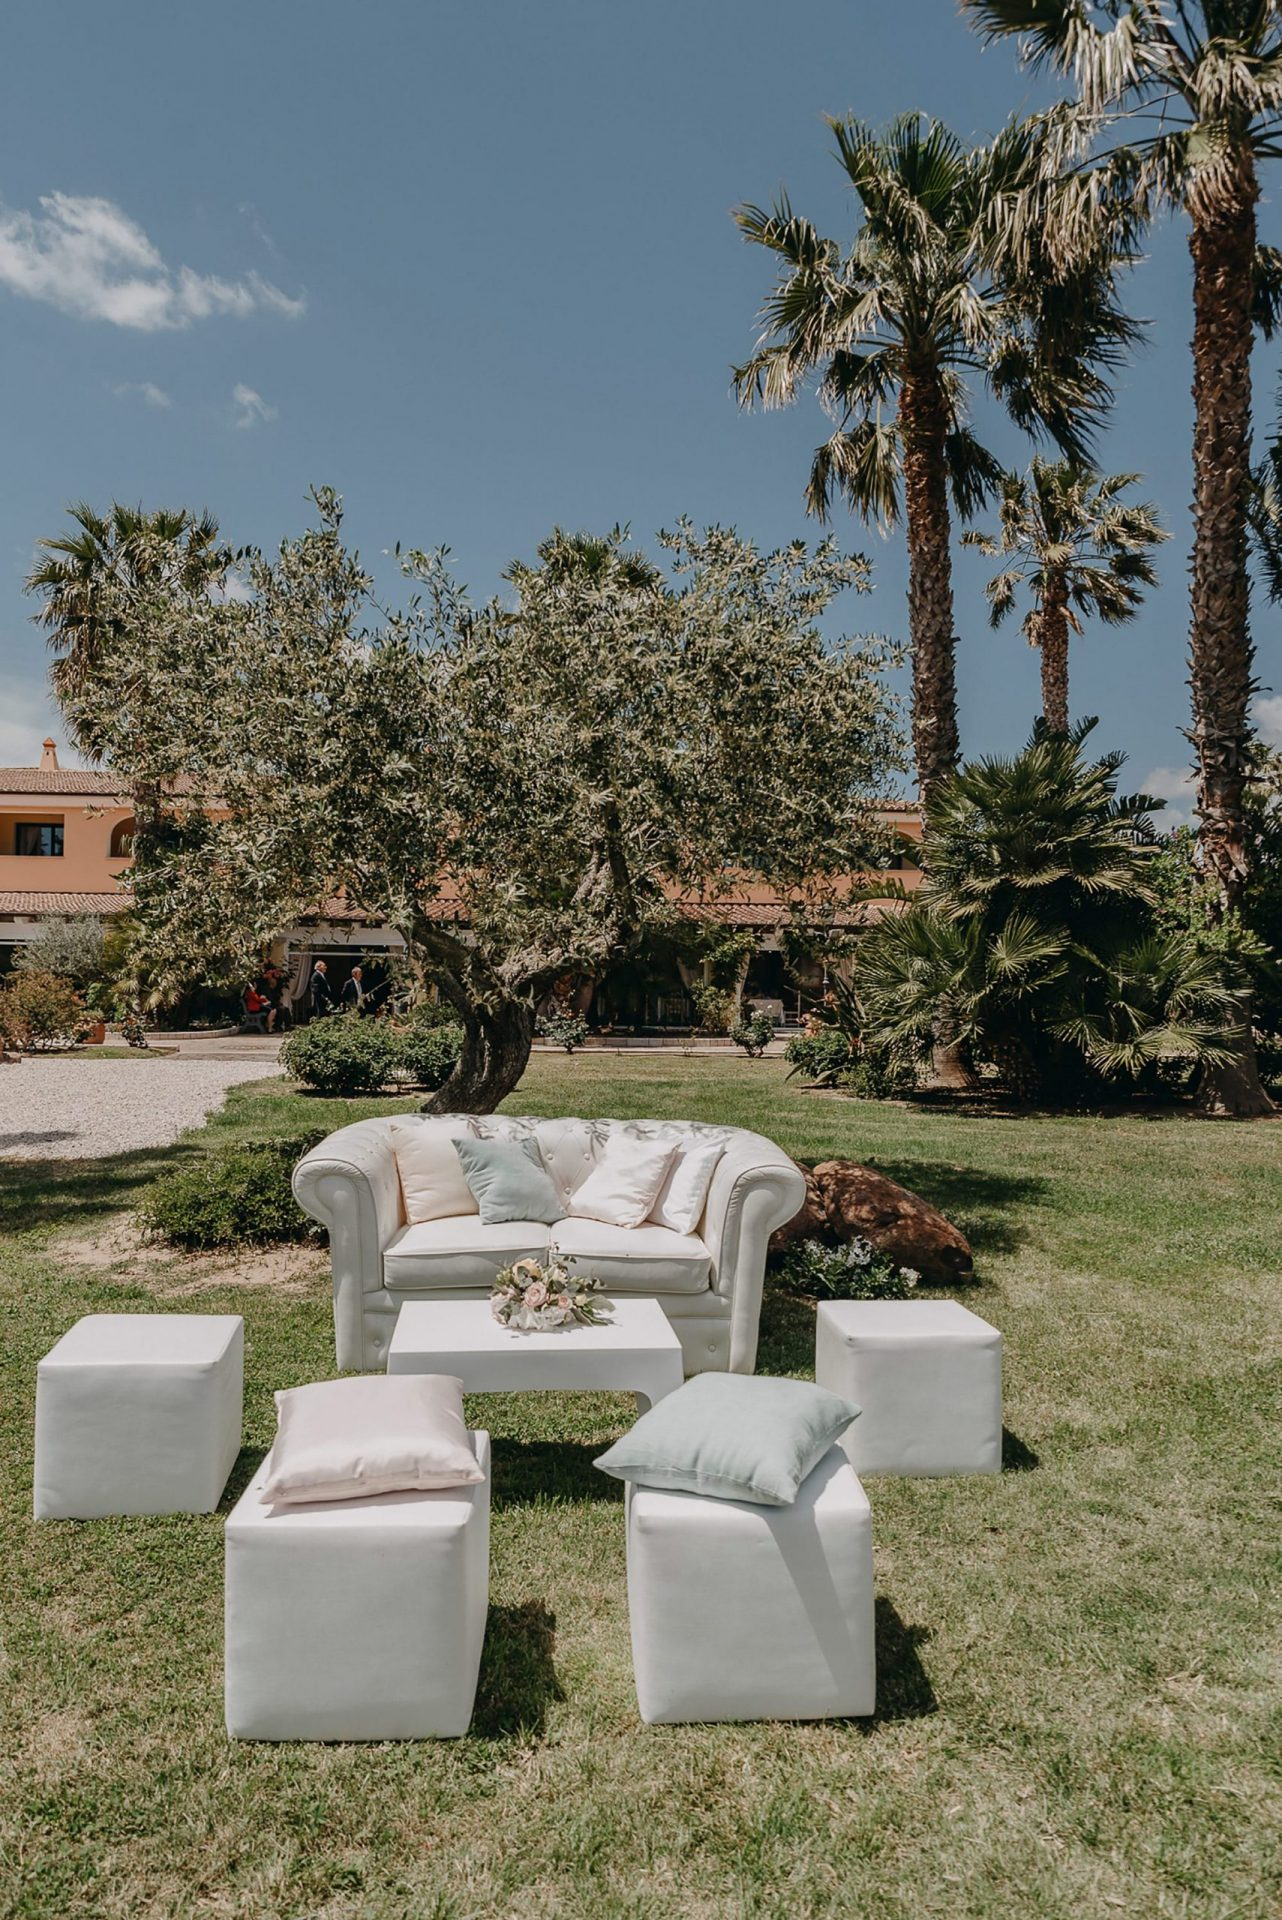 Giacomo and Federica, wedding lounge set